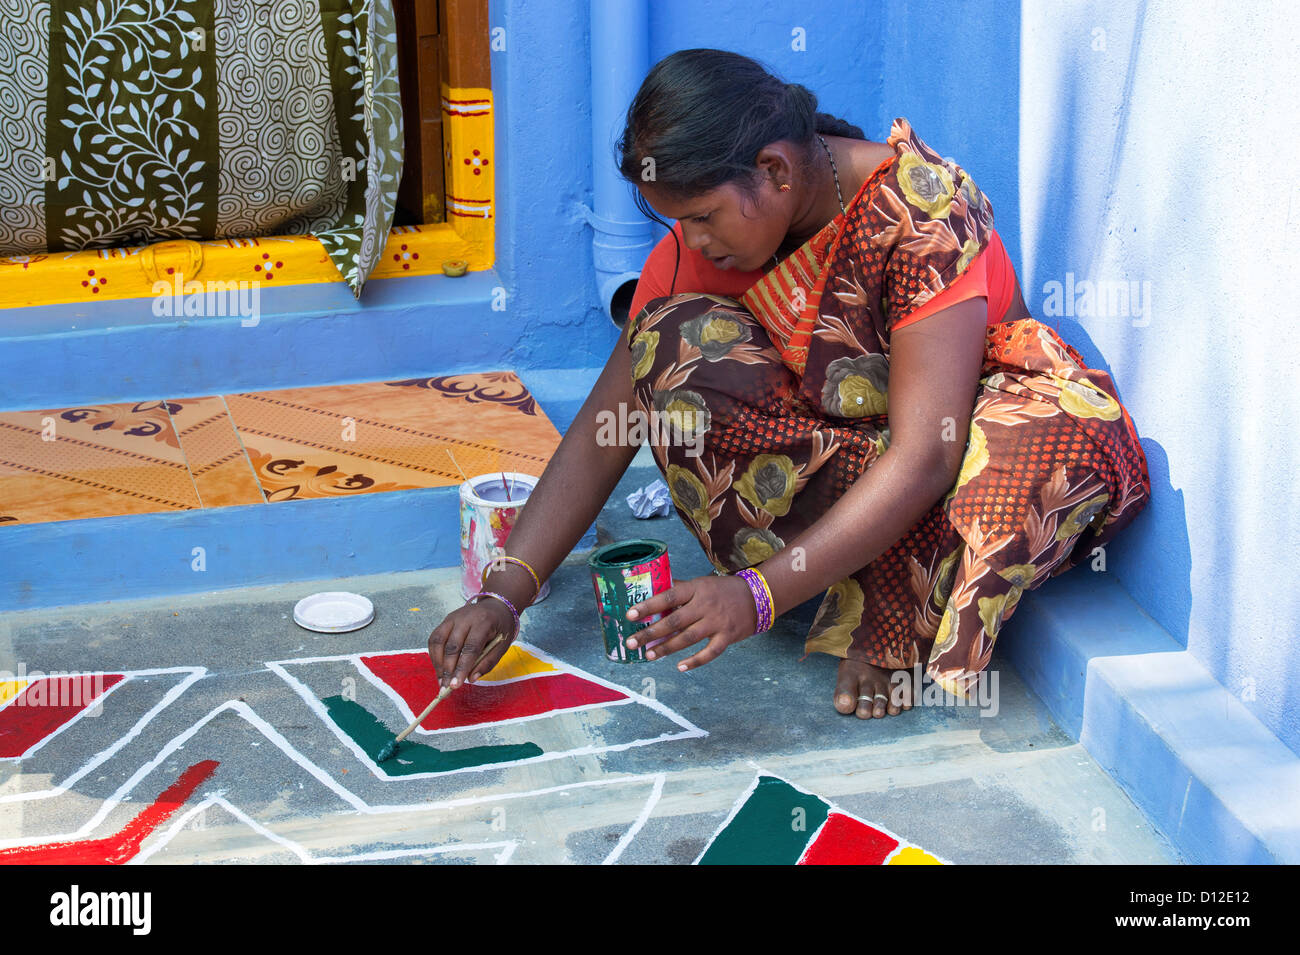 Young Indian Woman Painting A Rangoli Design Outside A Rural Indian